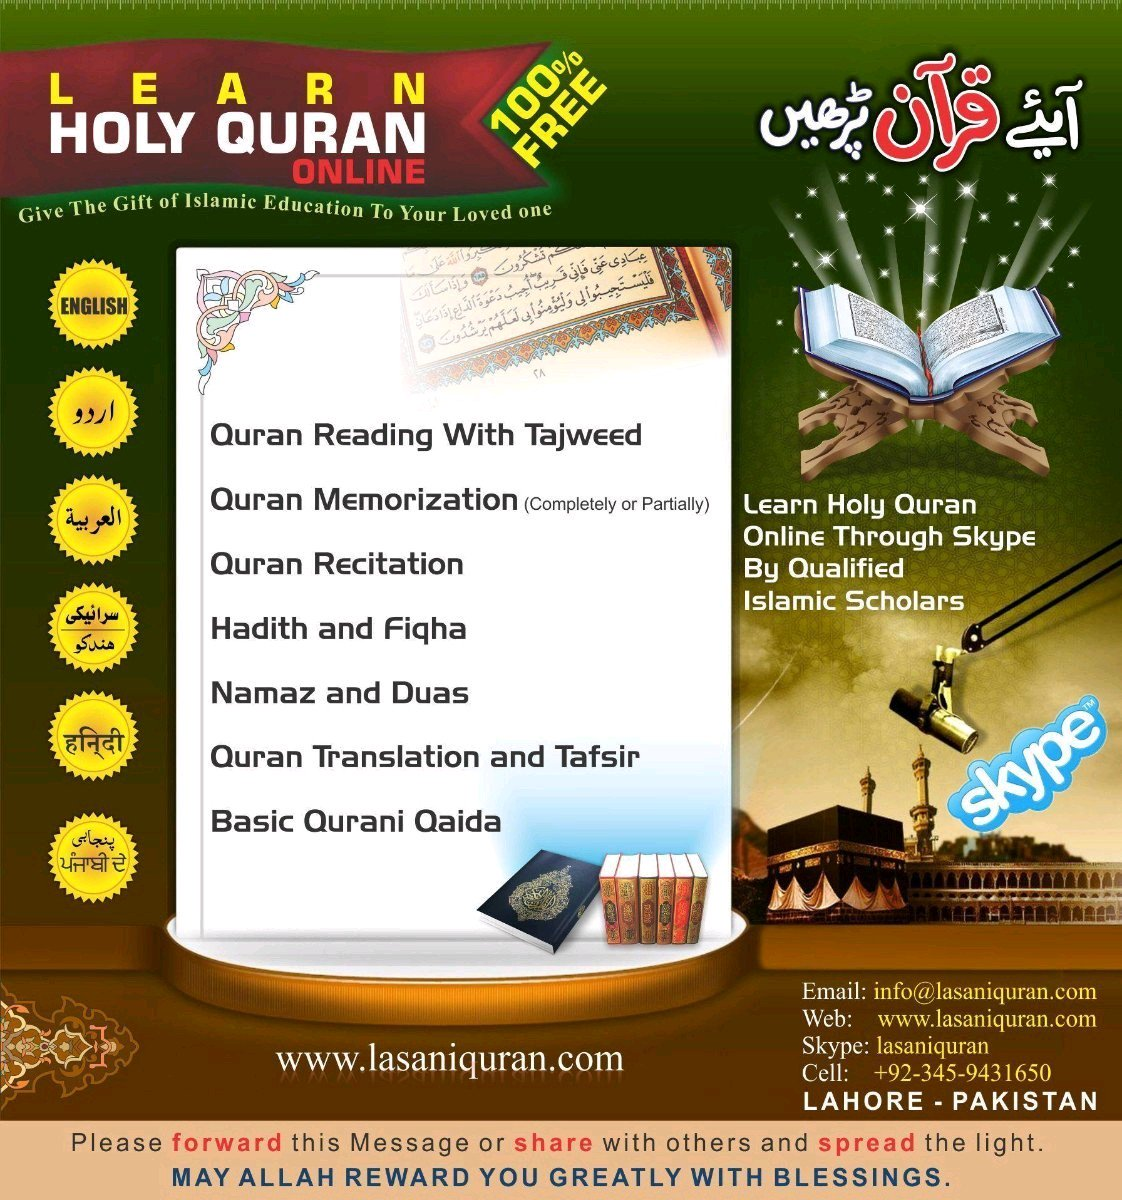 Alhamdulillah. 230 students and growing. Please share. Register now for free. http://LasaniQuran.com